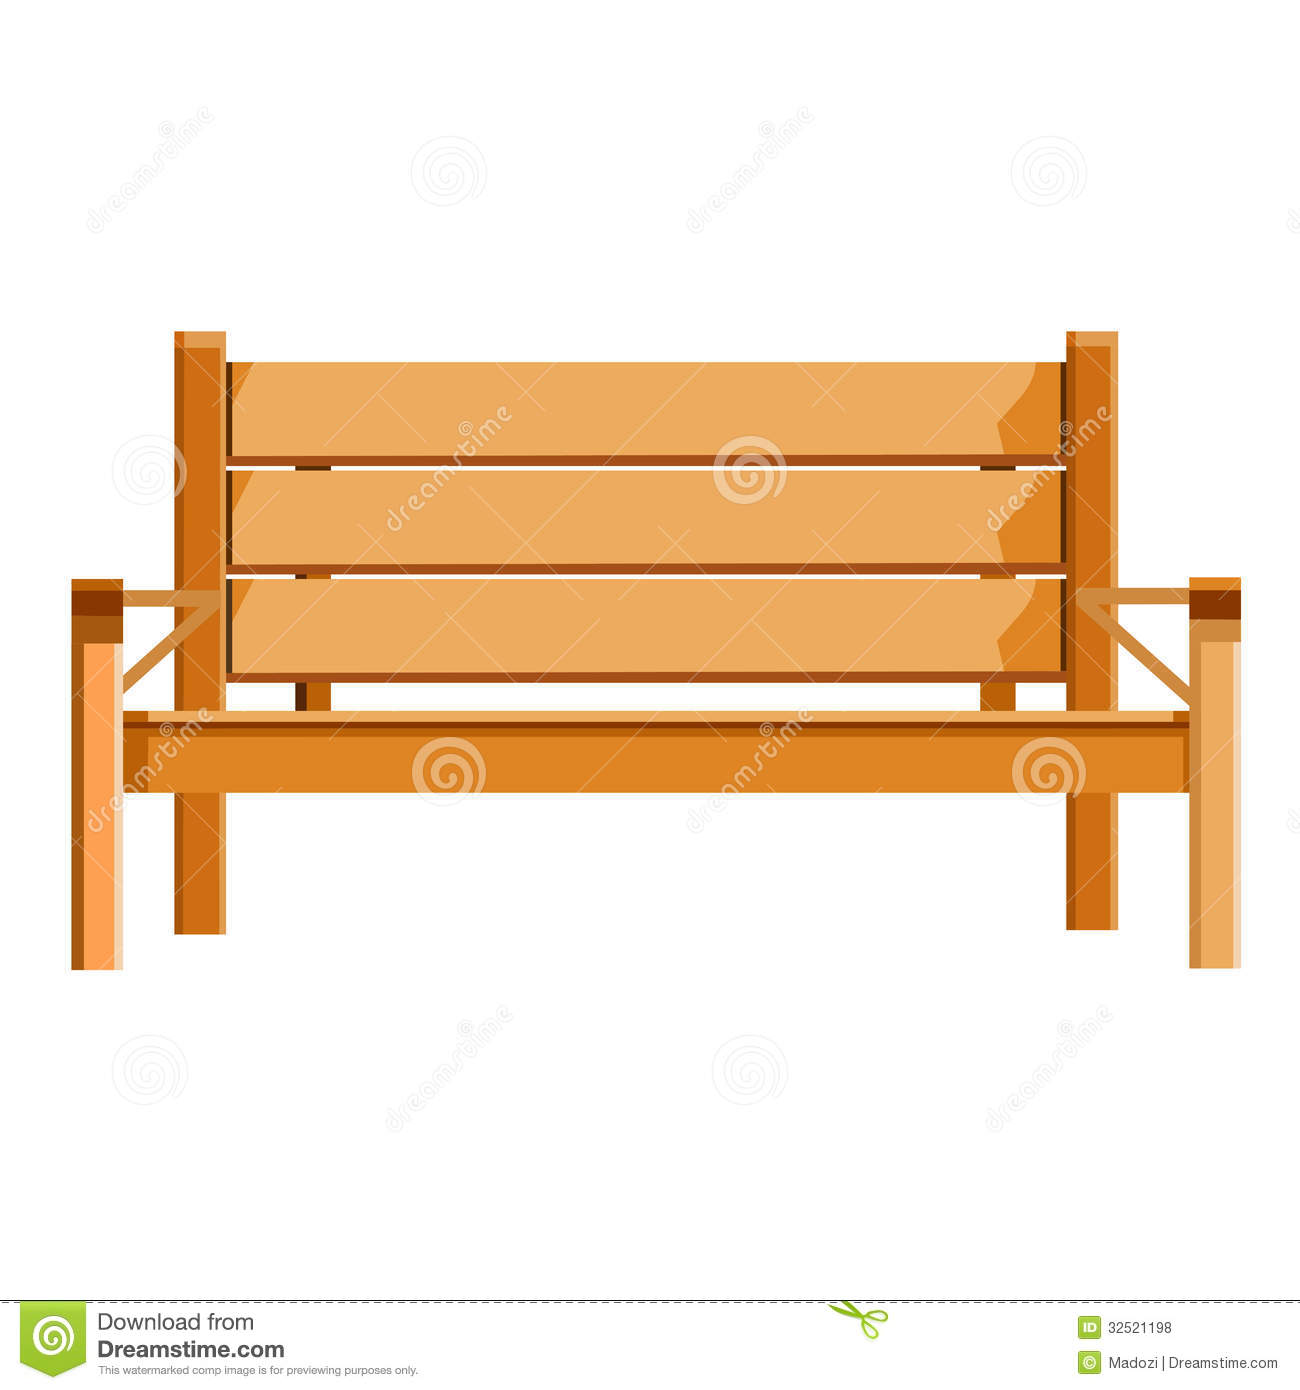 Wood clipart park bench #8